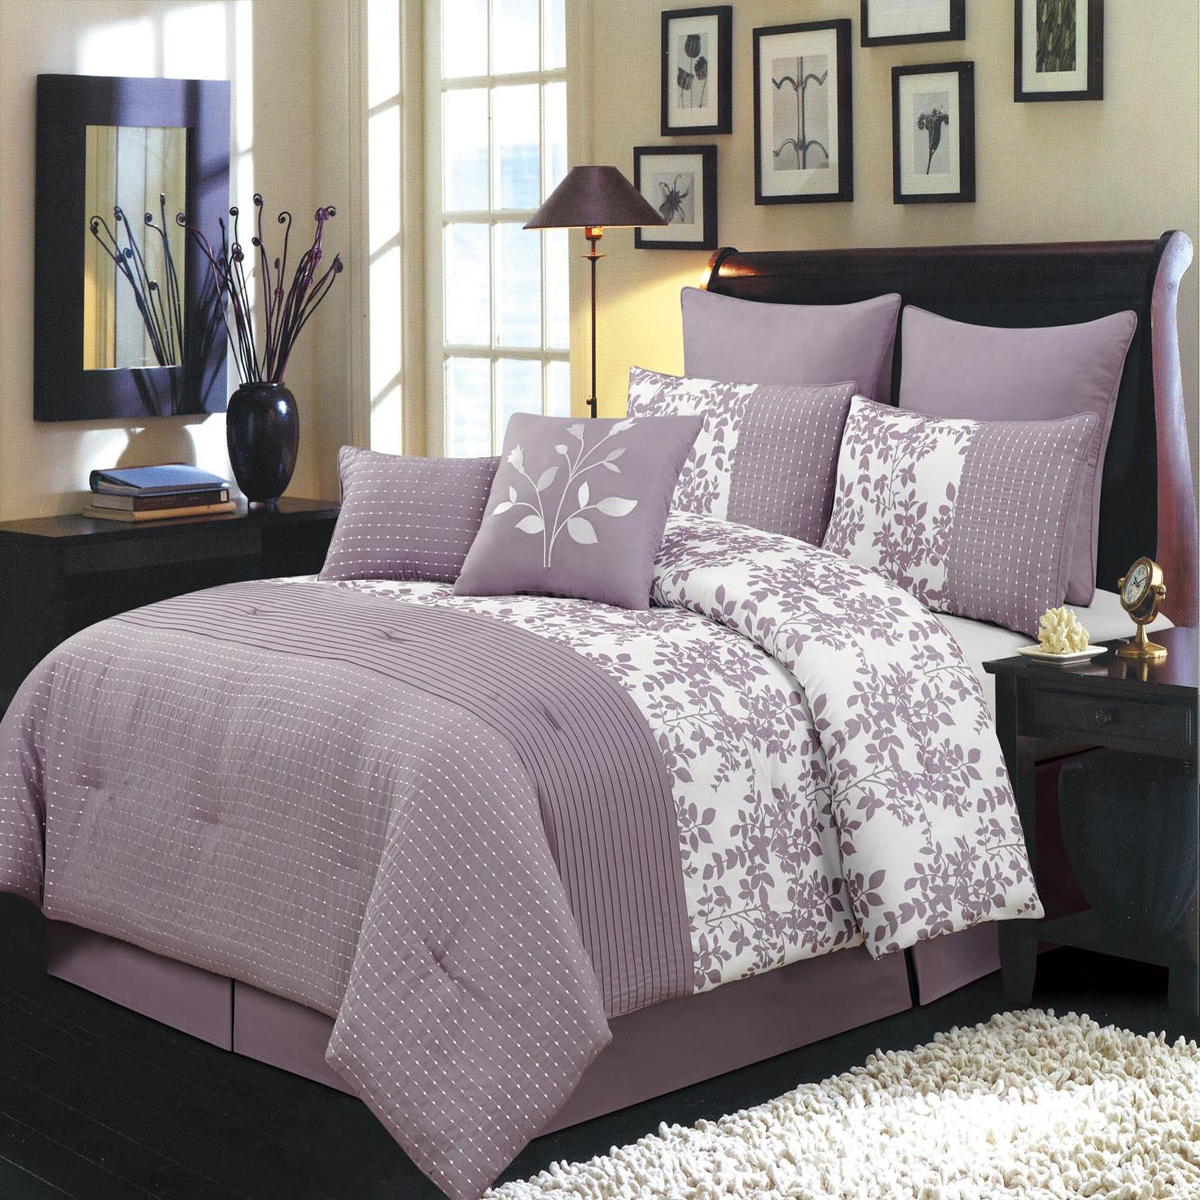 Bliss 8-Pieces Bed in a Bag Set Includes Comforter Skirt Shams and Pillows